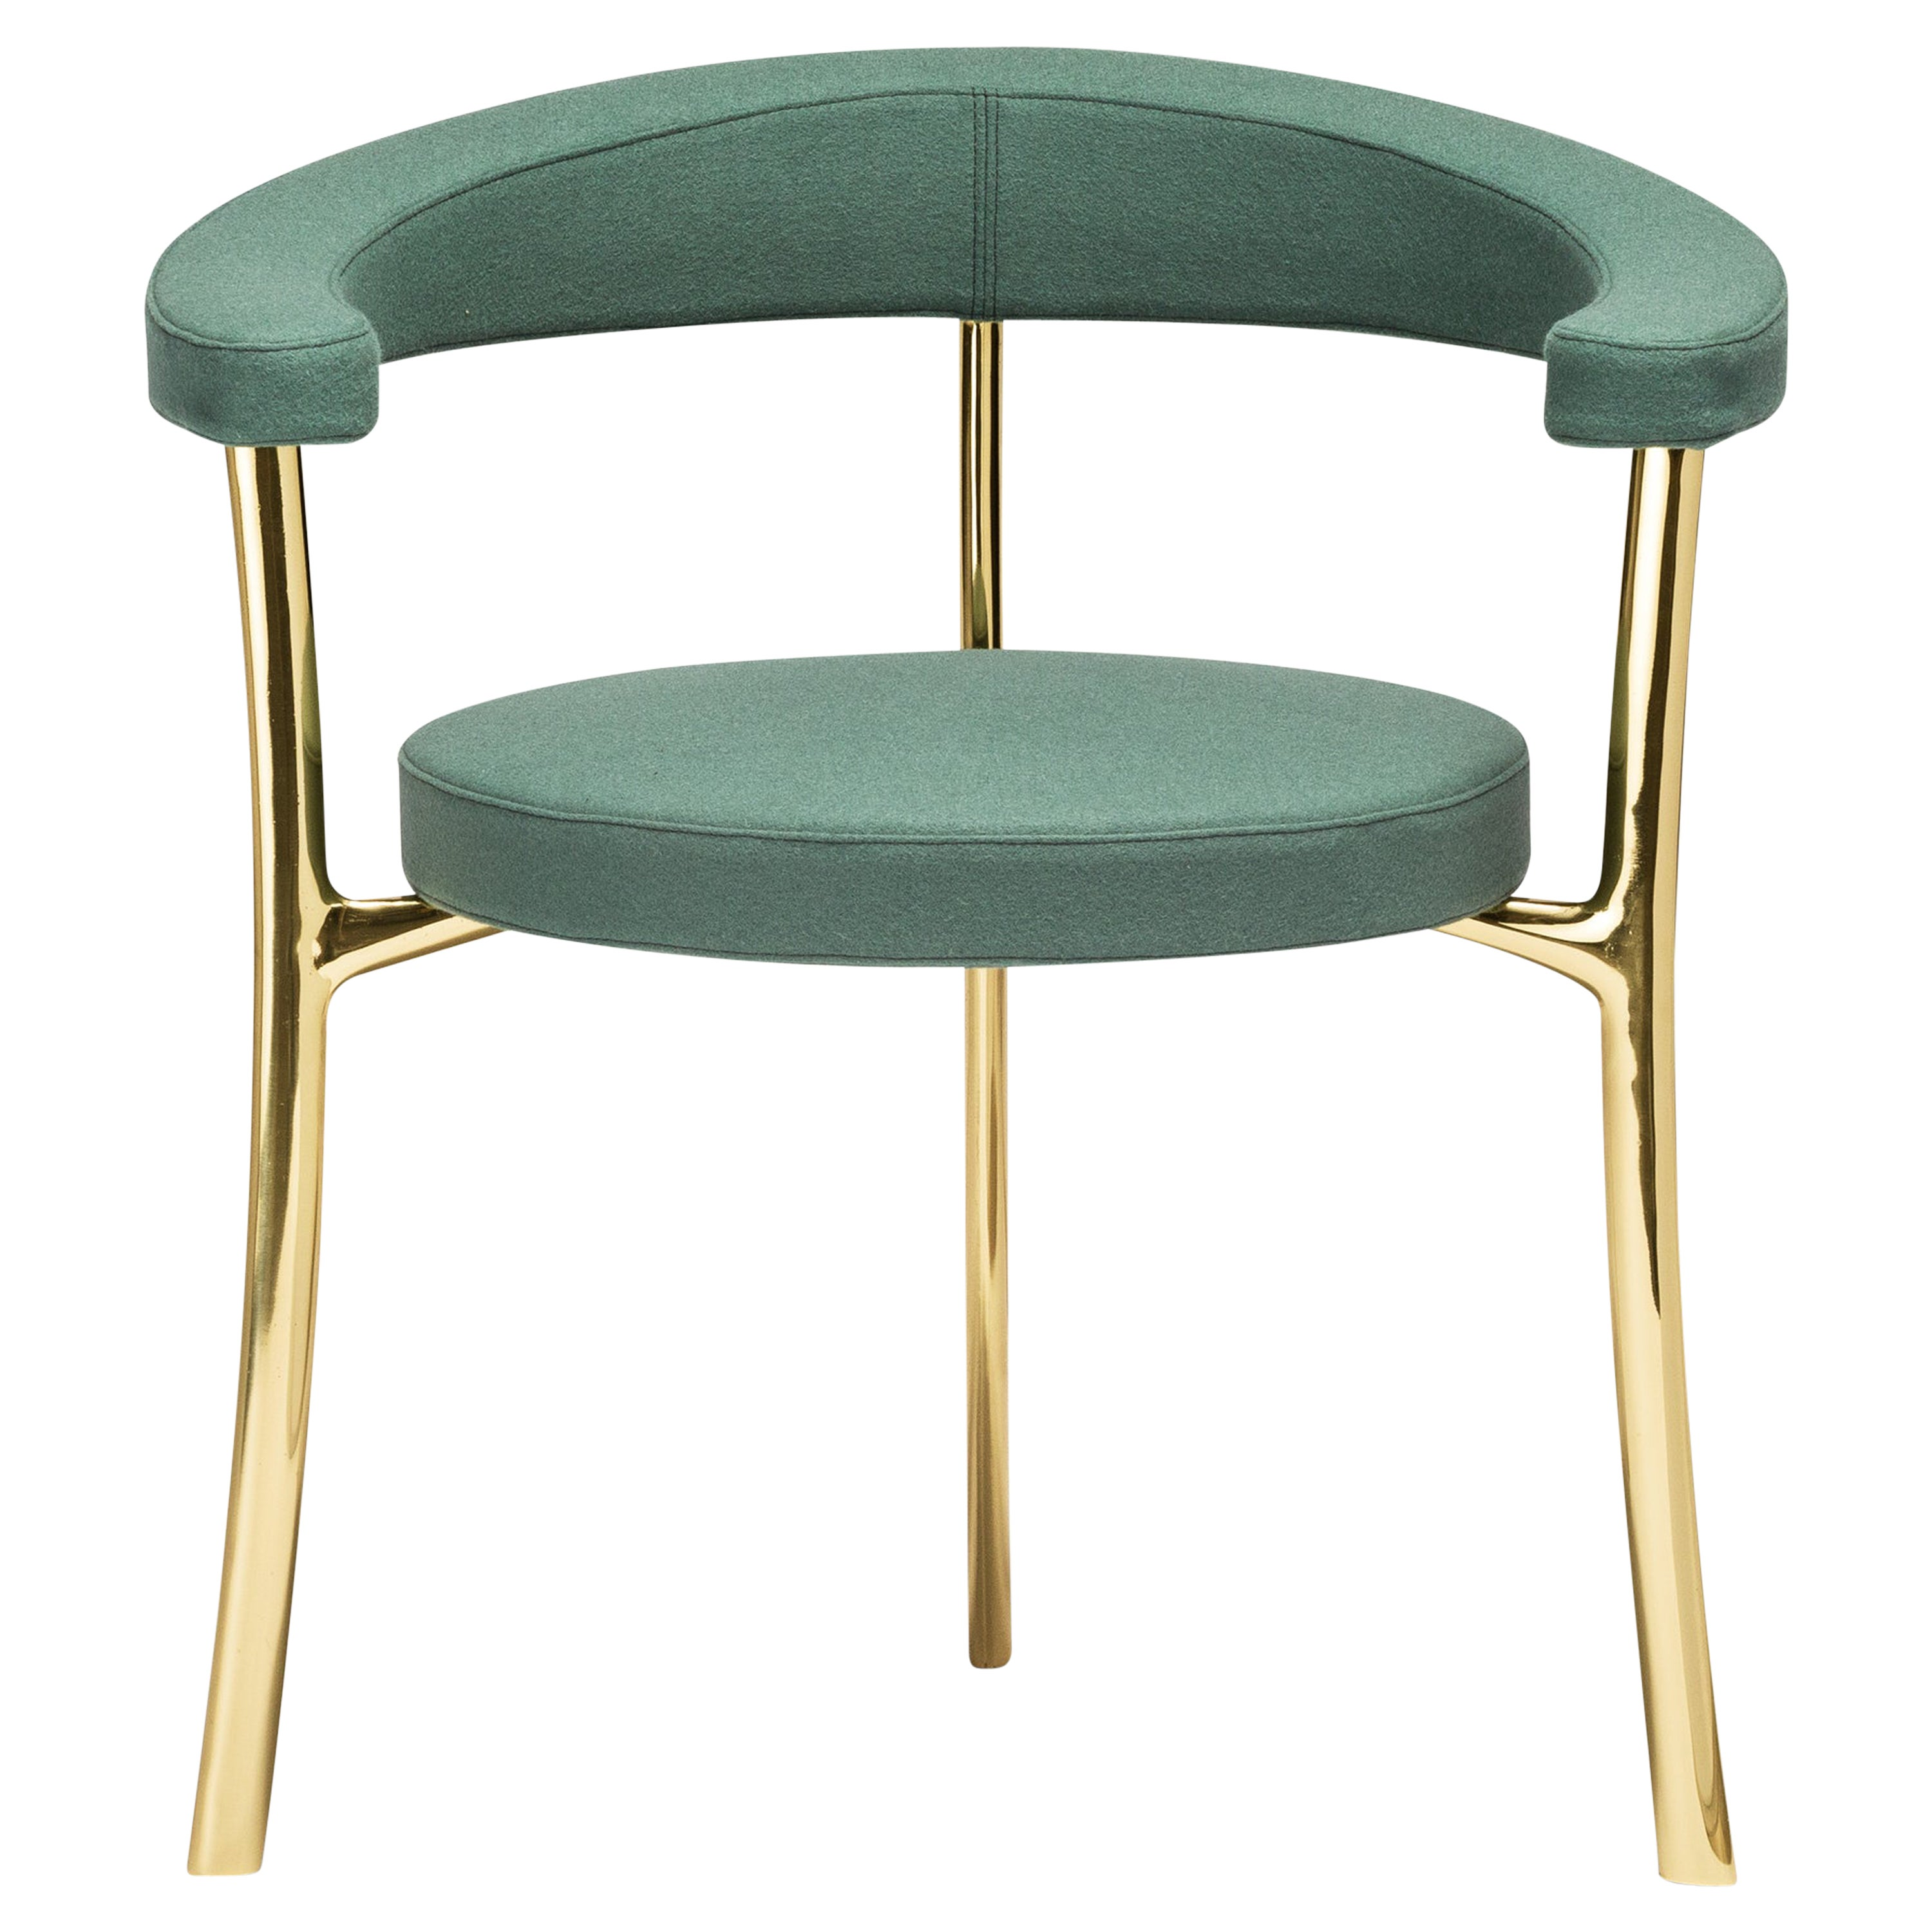 Ghidini1961 Katana Armchair in Fabric with Polished Brass Legs by Paolo Rizzatto